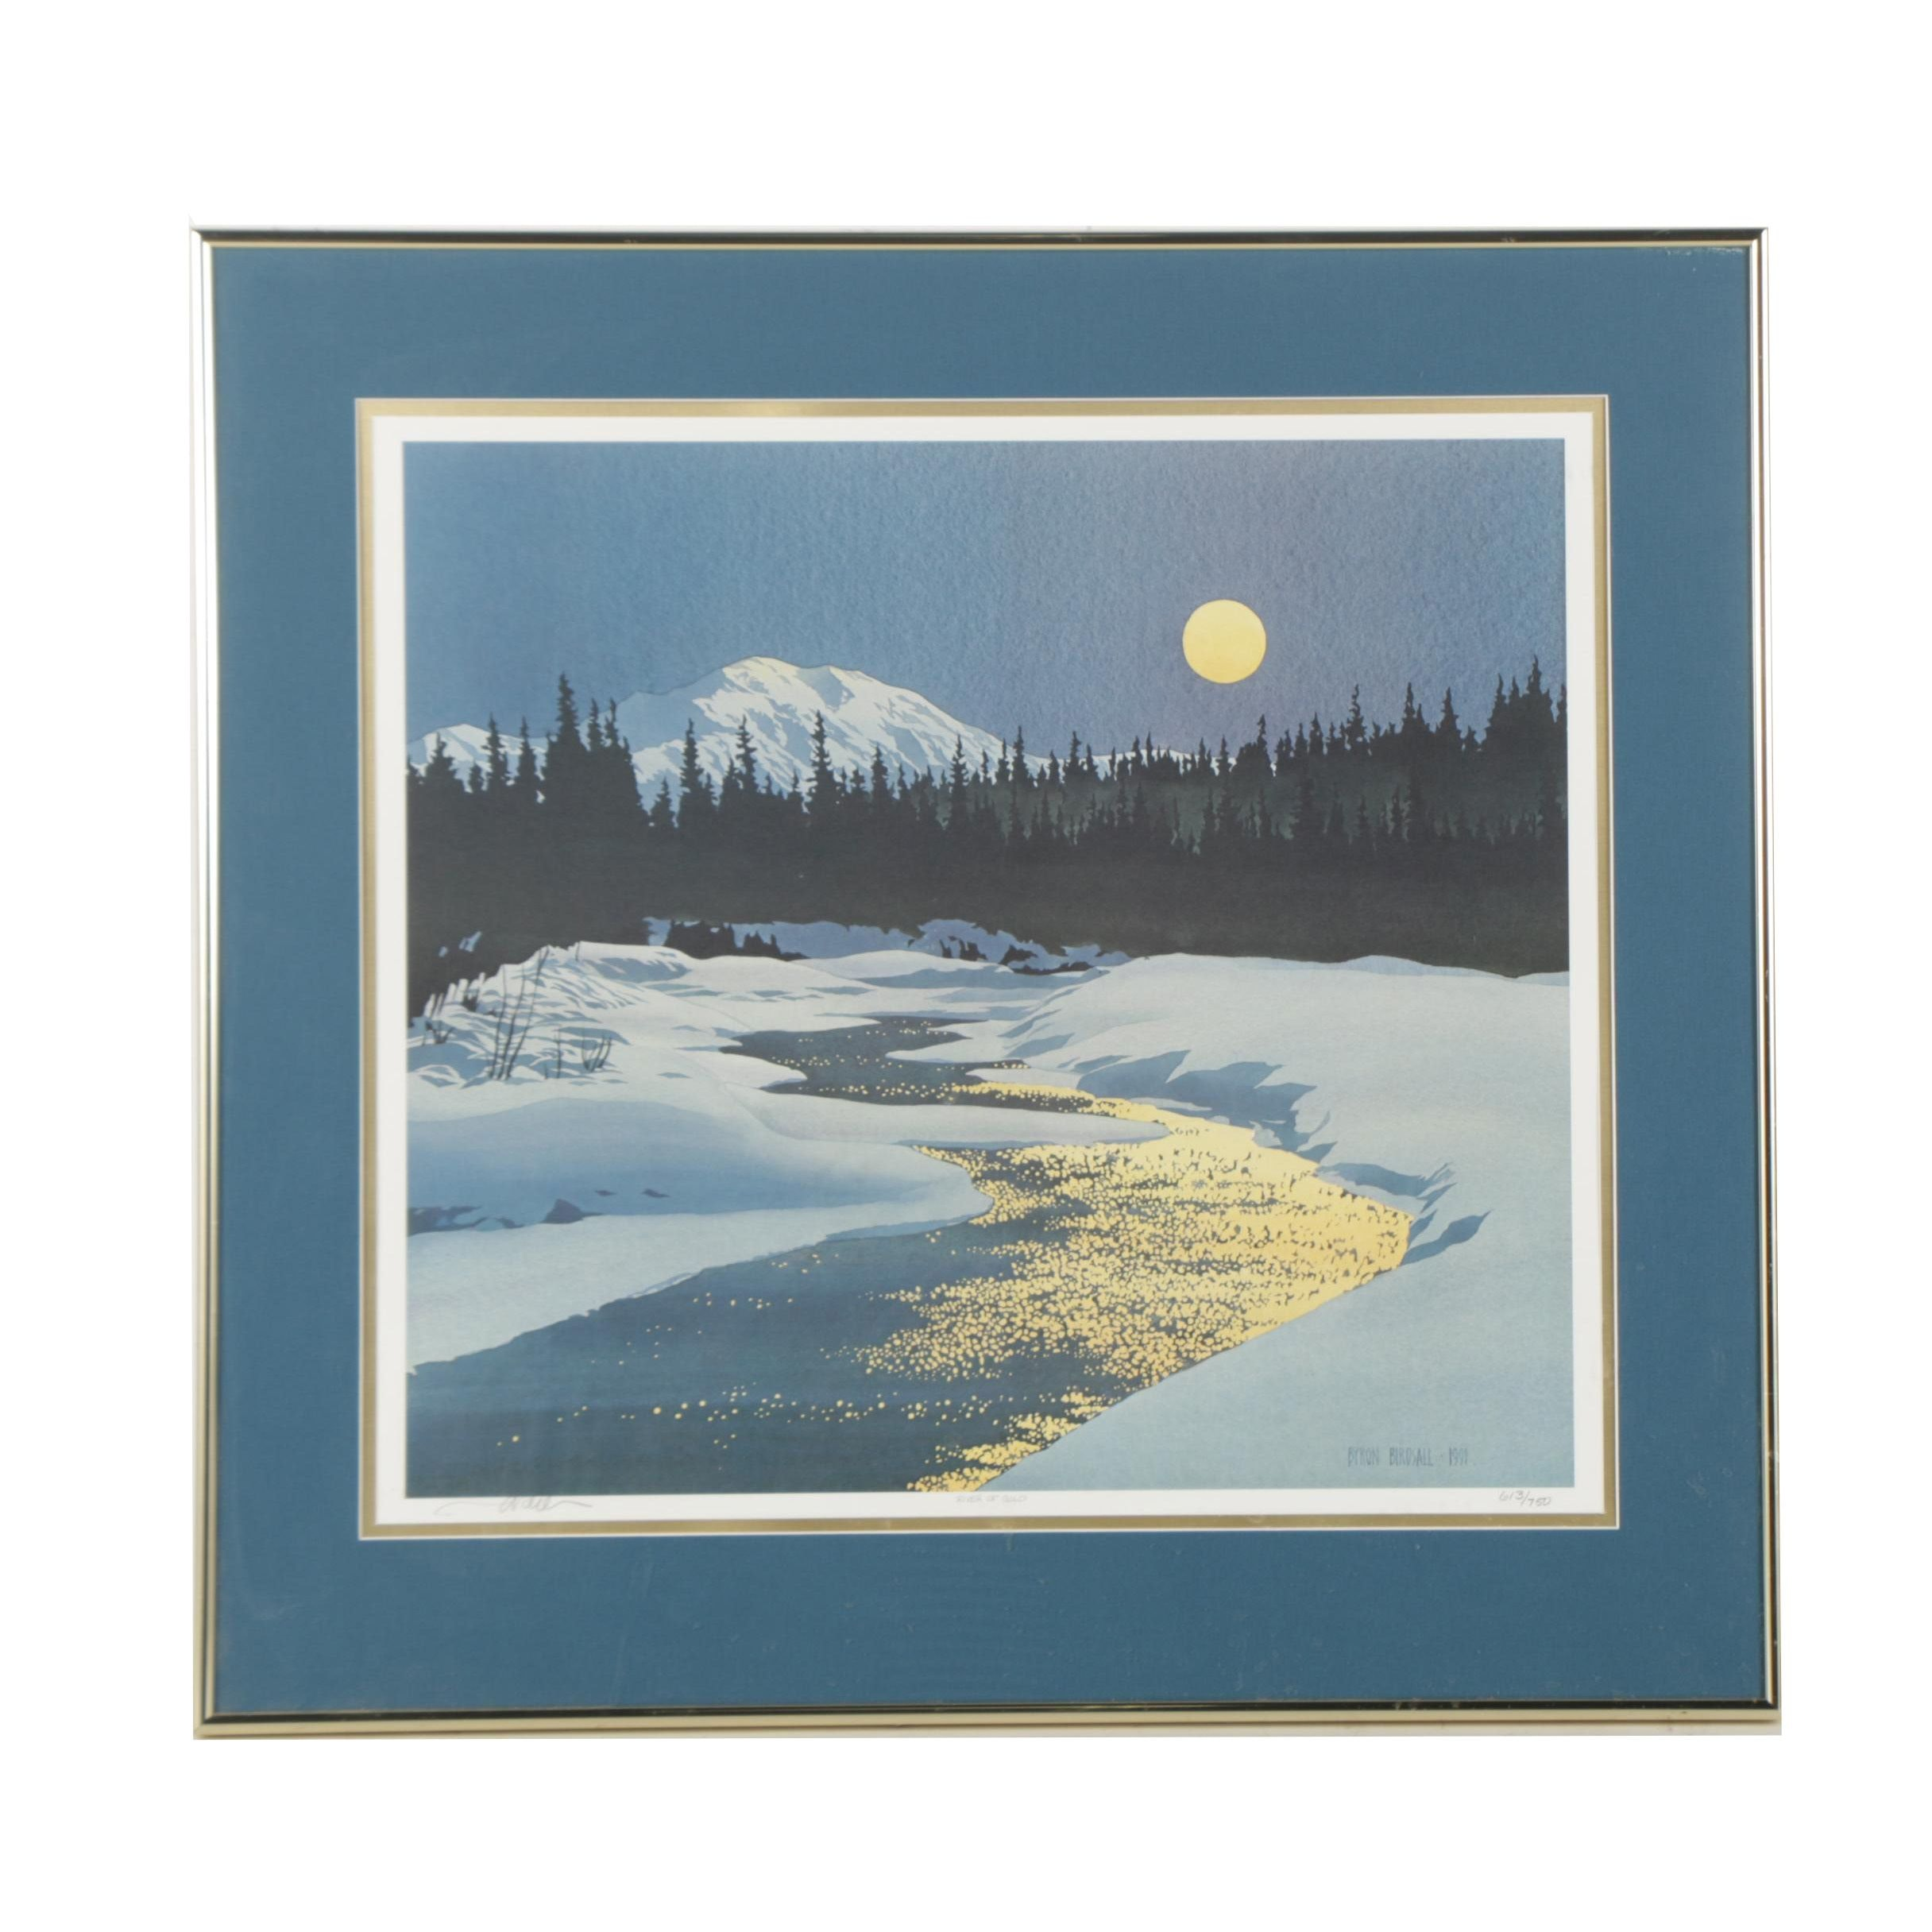 """Limited Edition Offset Lithograph After Byron Birdsall """"River of Gold"""""""